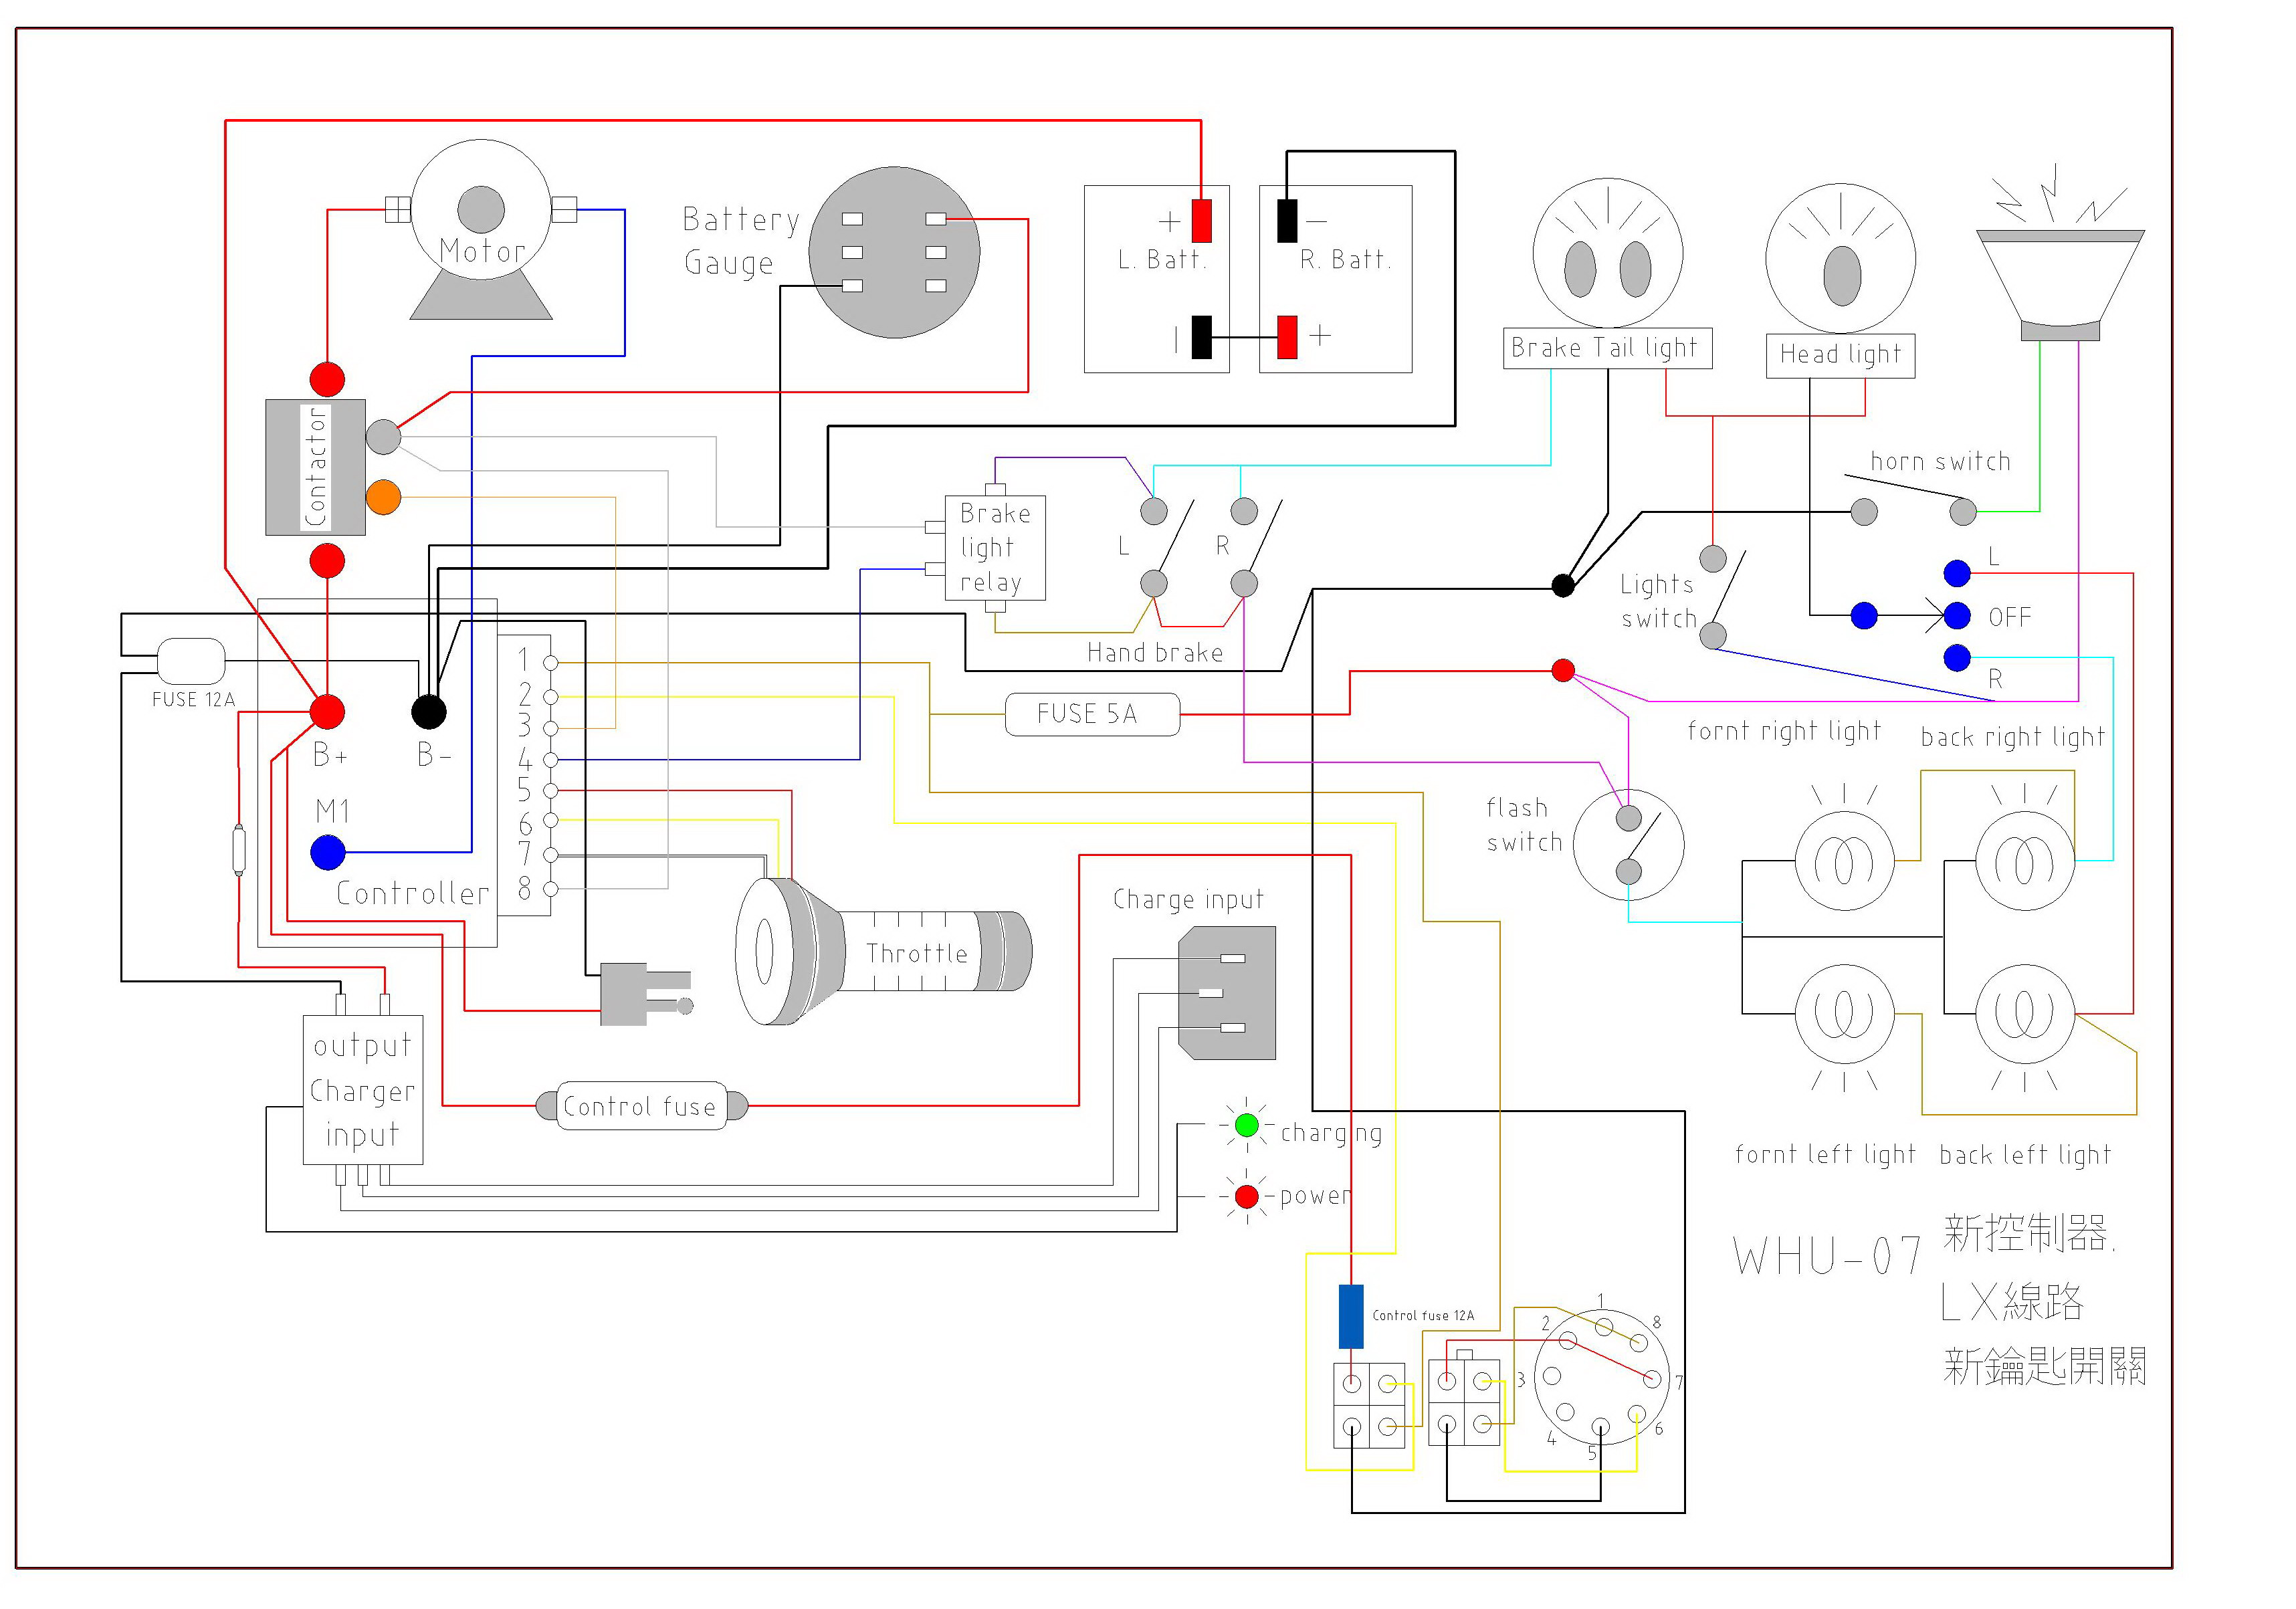 Freedom Scooter Wiring Diagram Schematic Diagrams Rascal 600 Ego Electric House Symbols U2022 600t Parts